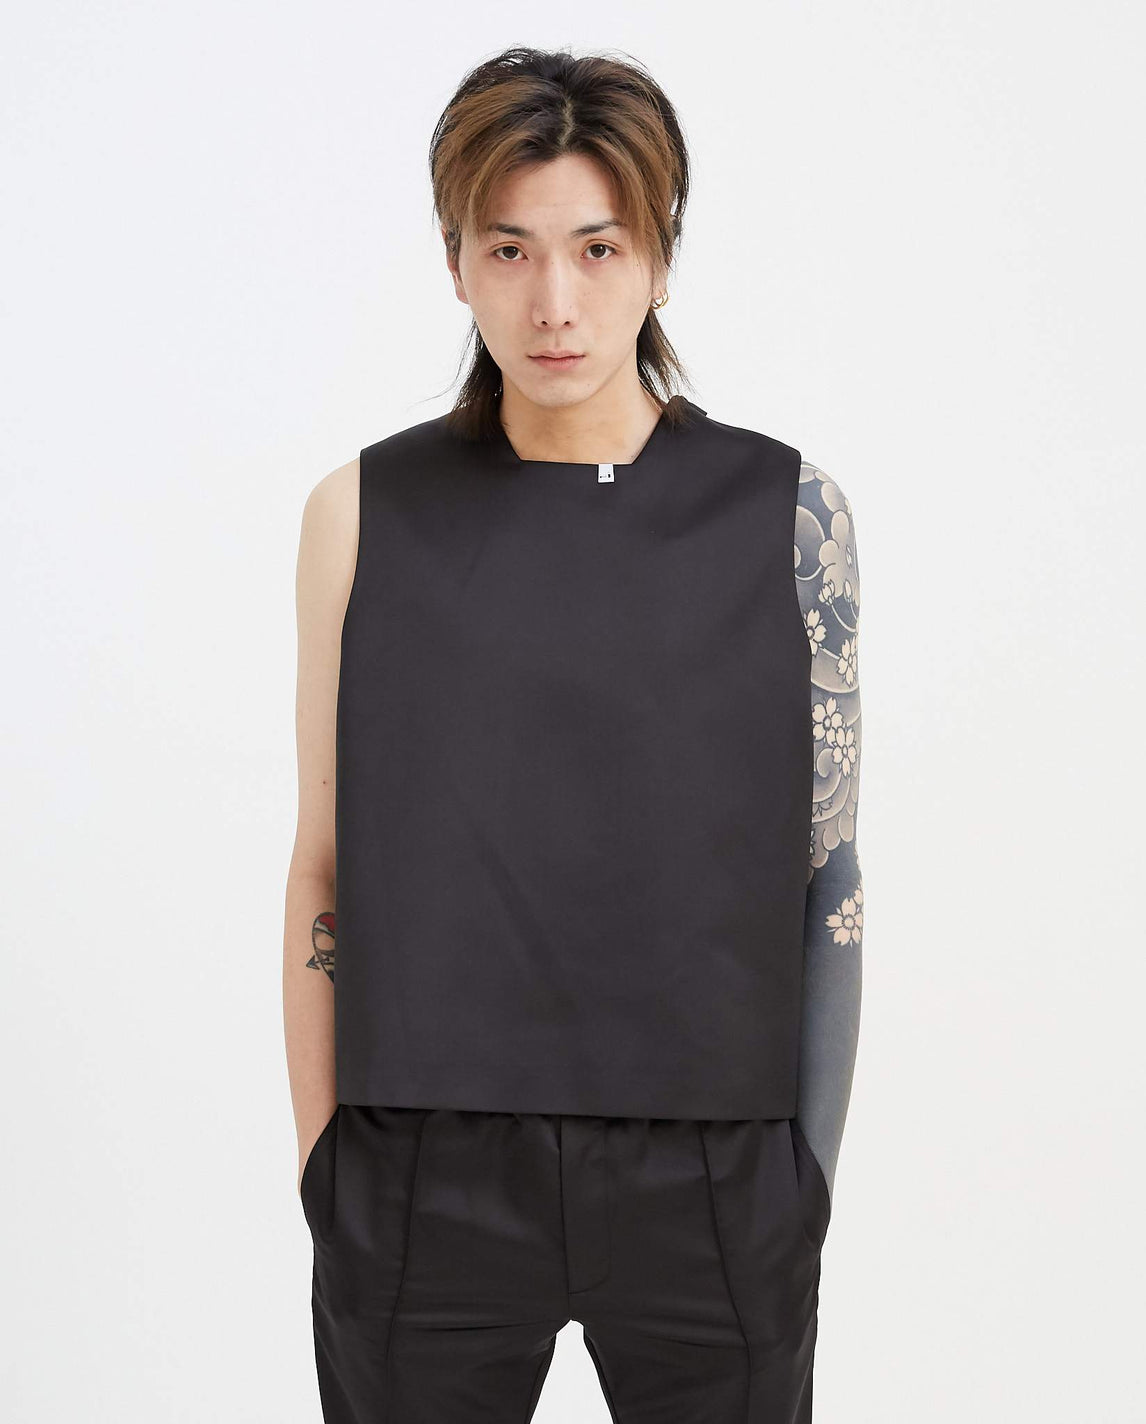 Satin Vest - Black MENS 1017 ALYX 9SM